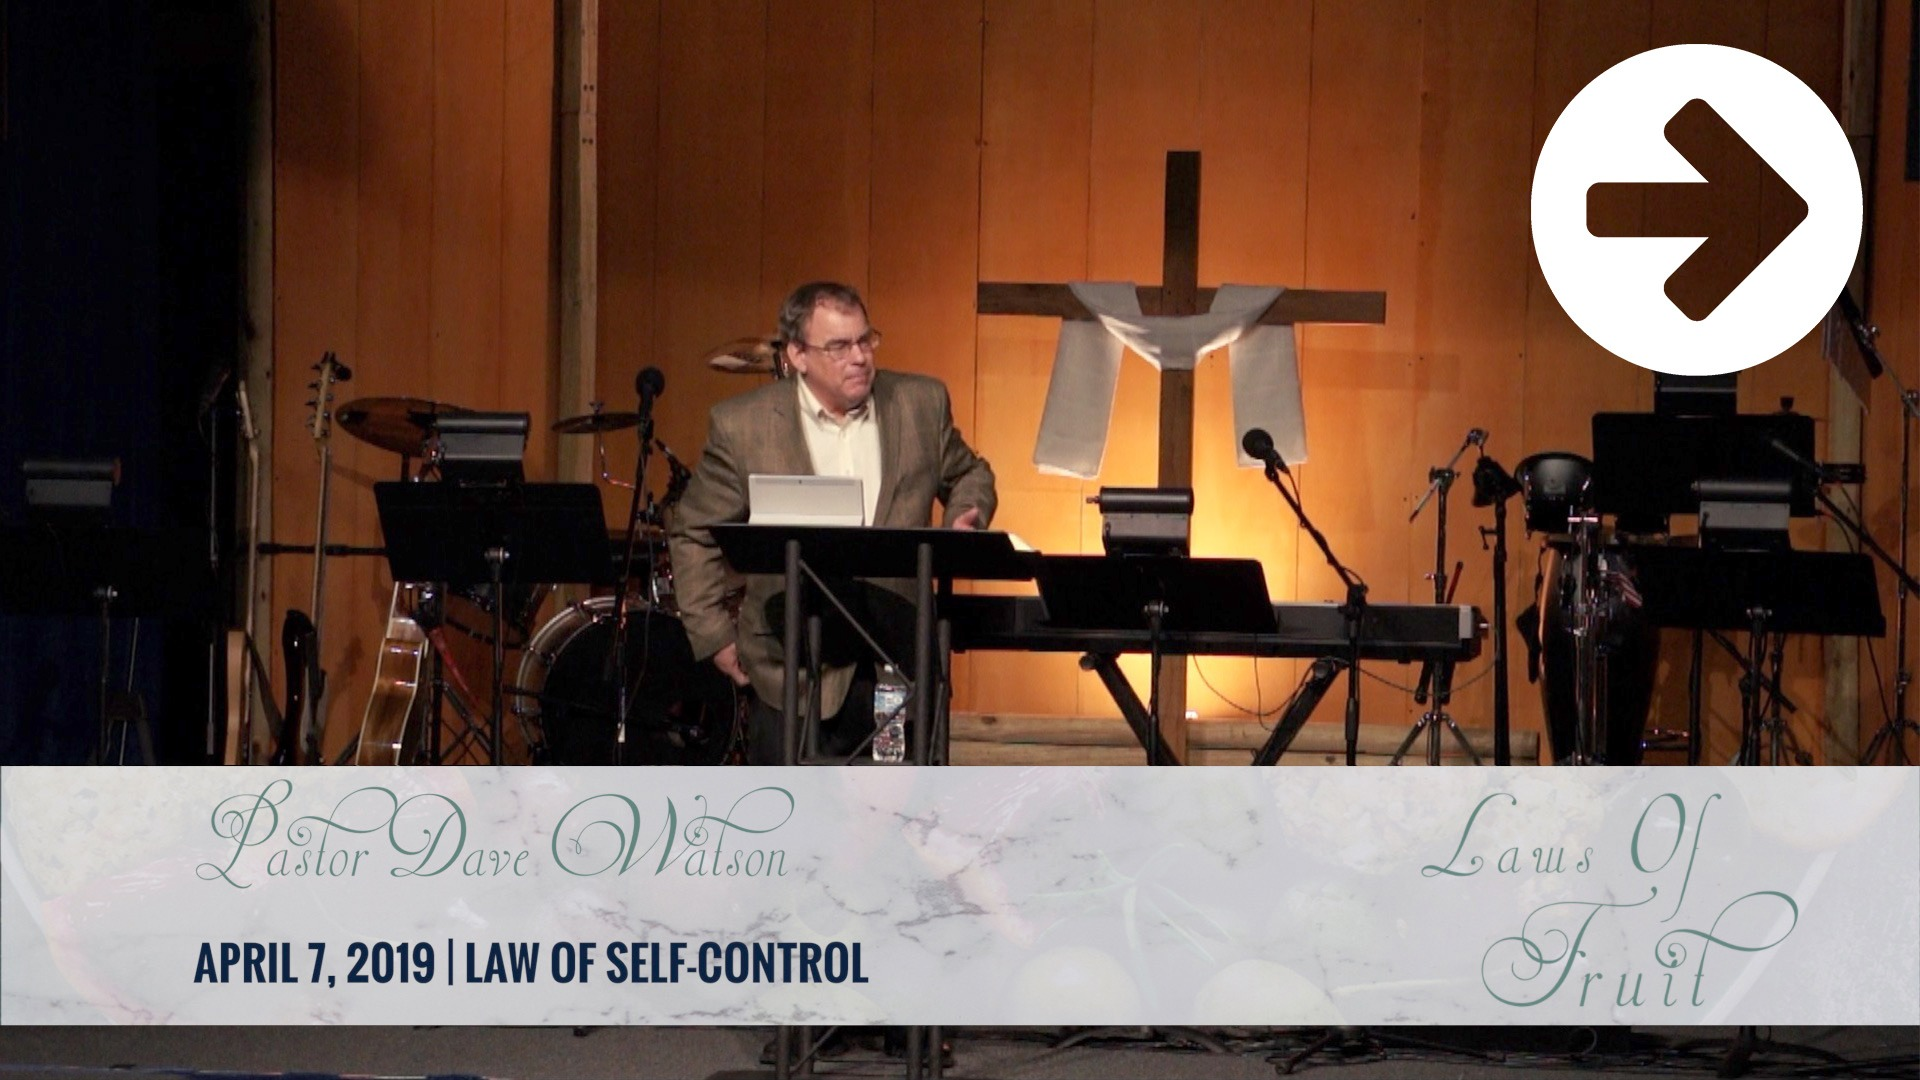 Law Of Self-Control Image